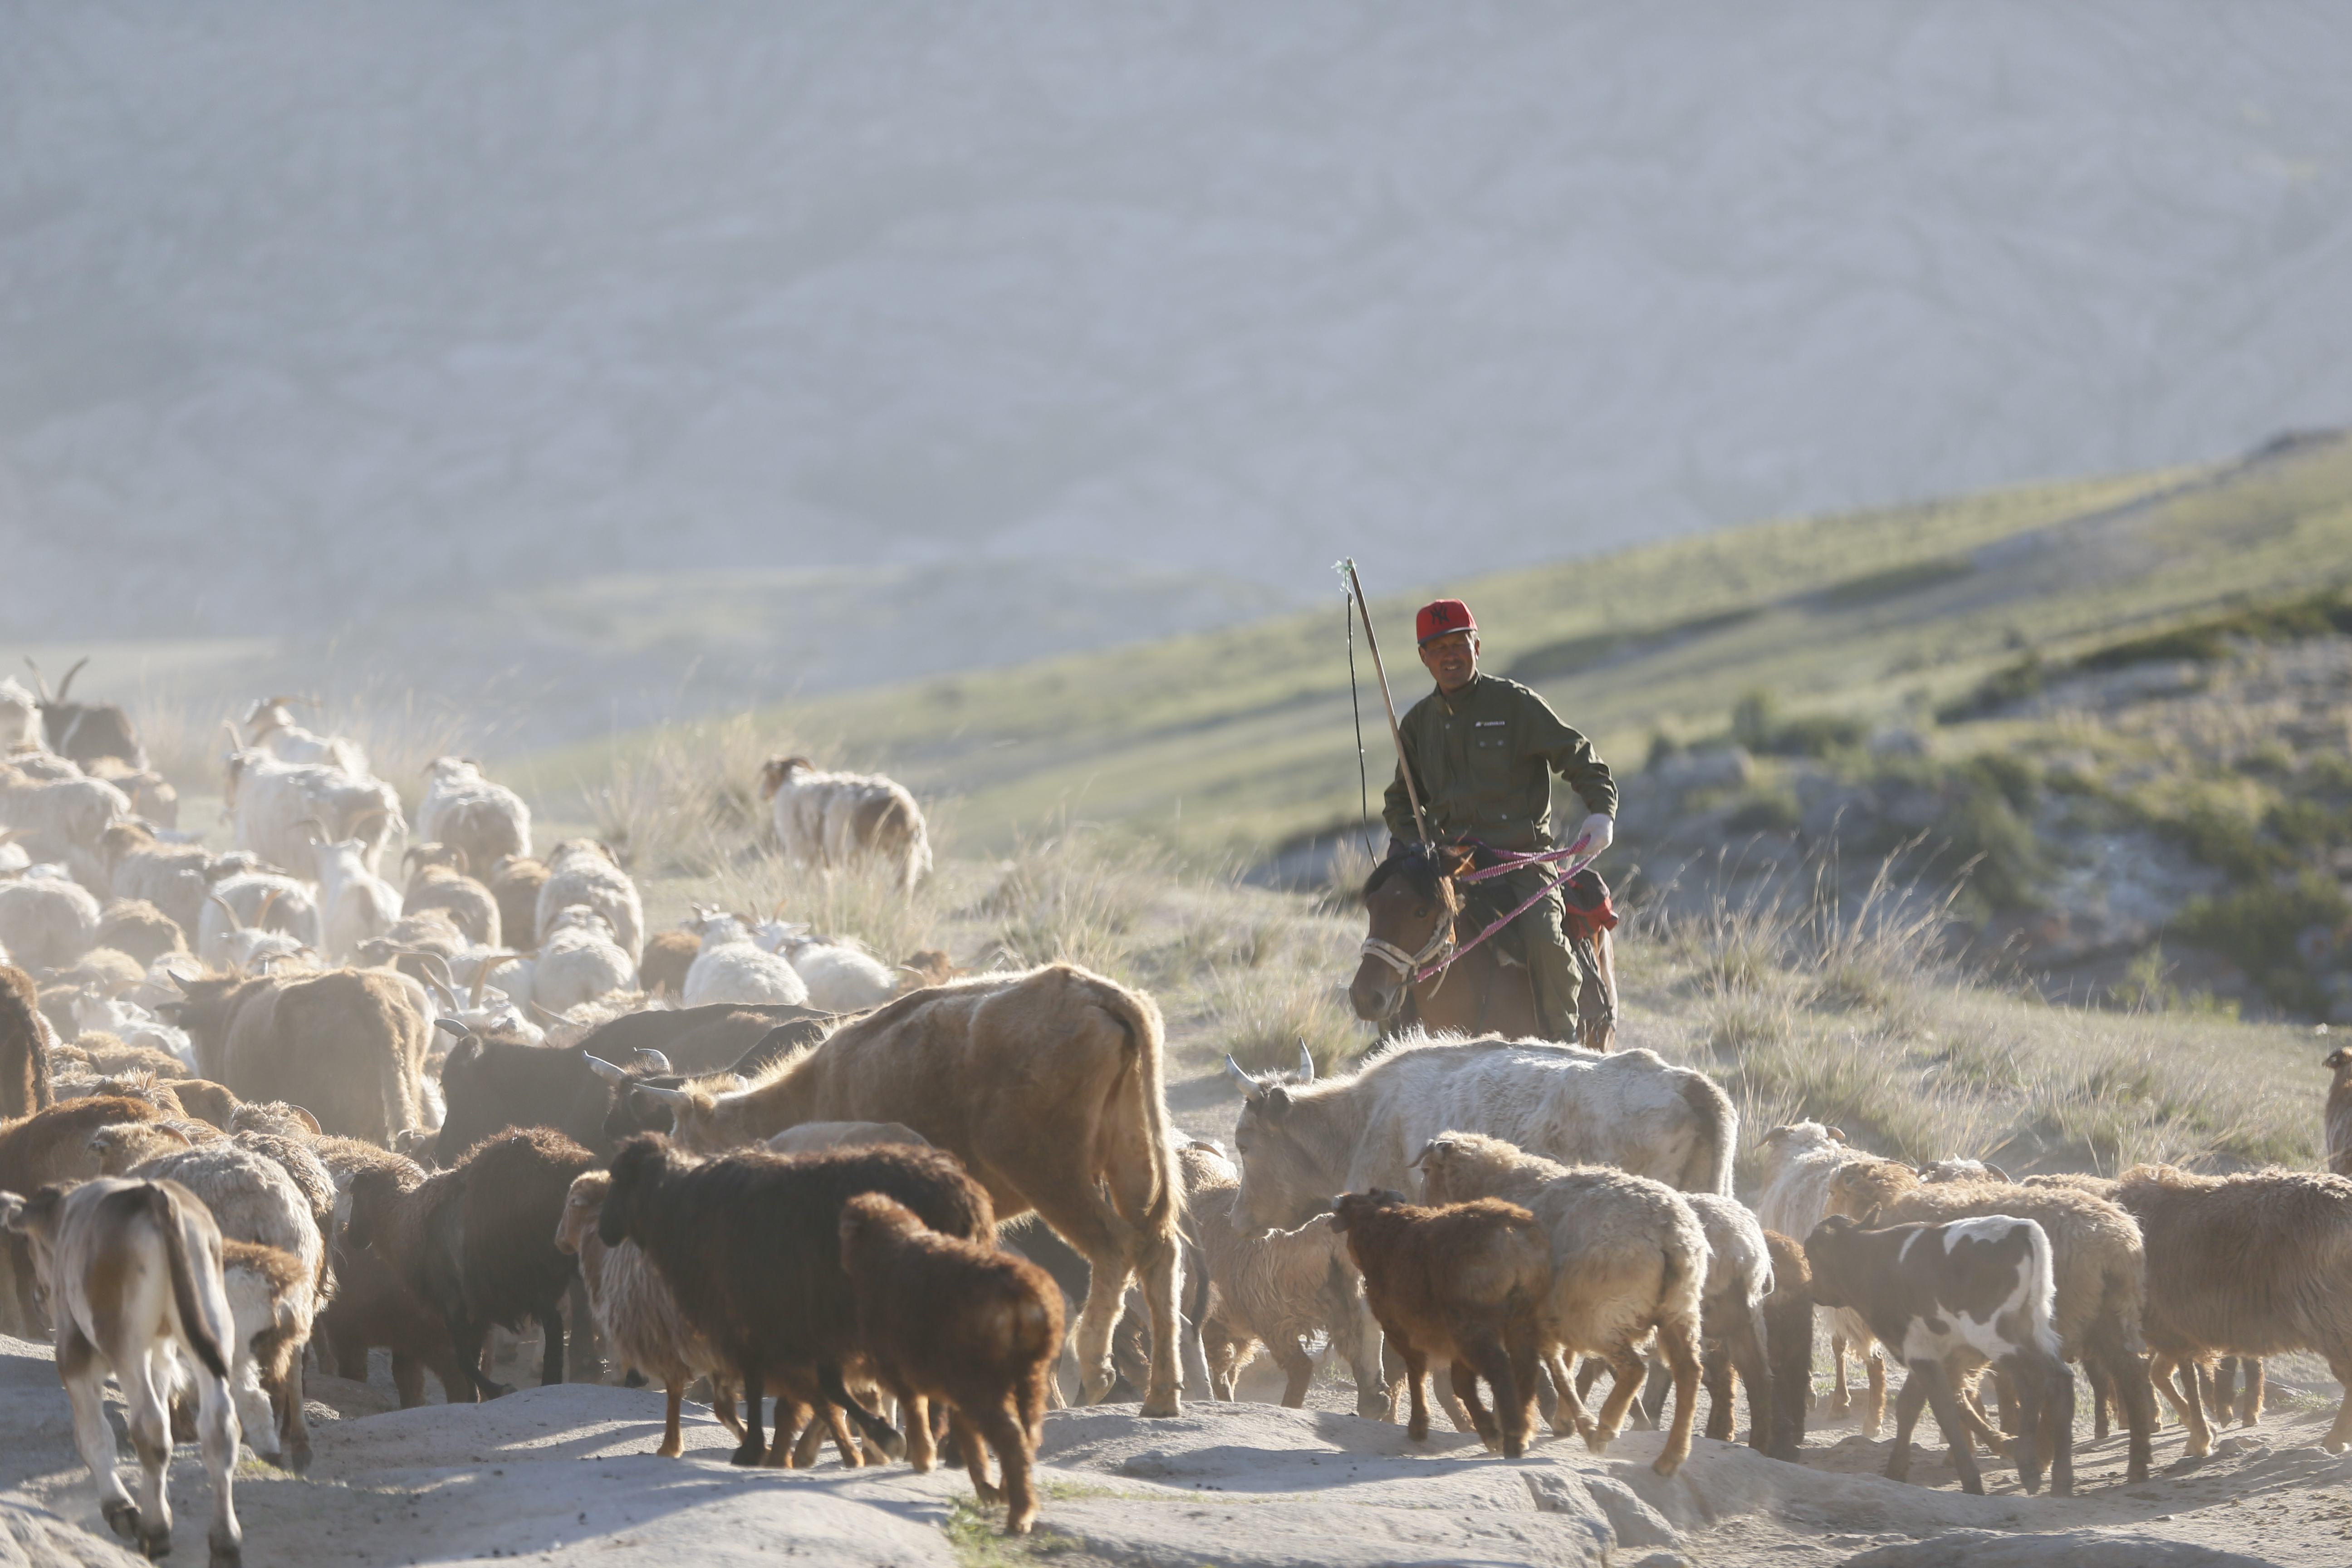 A Chinese herdsman with his cattle in the Gobi Desert in Altay, Xinjiang Uyghur Autonomous Region in 2014. (Photo: Xiaolu Chu/Getty Images)